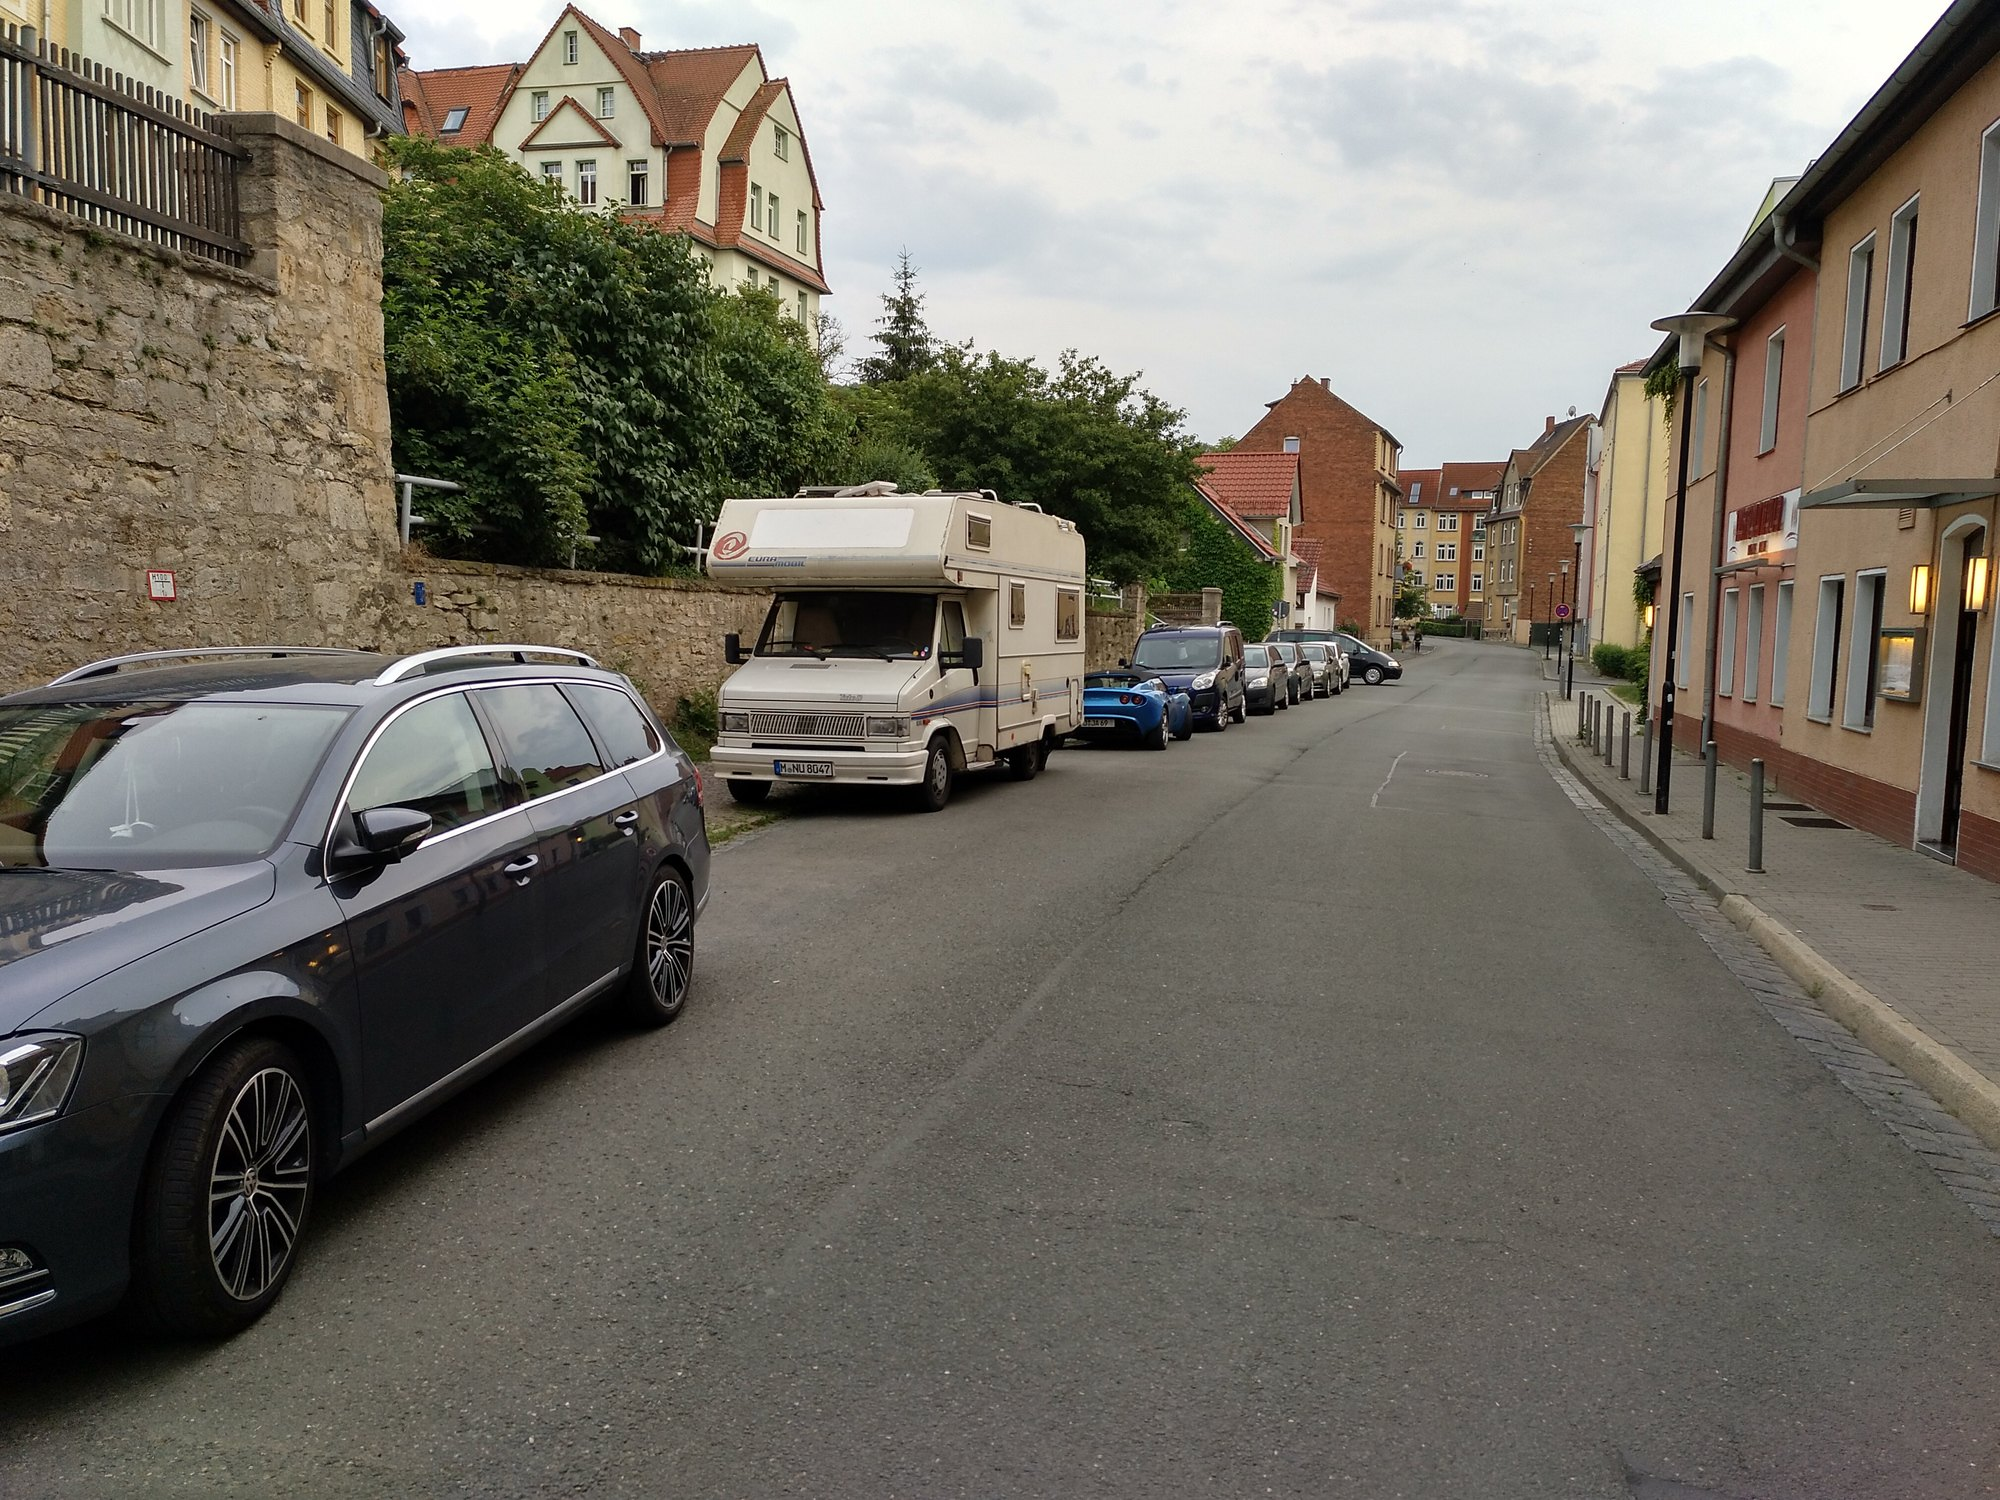 camping-car dans une rue tranquille